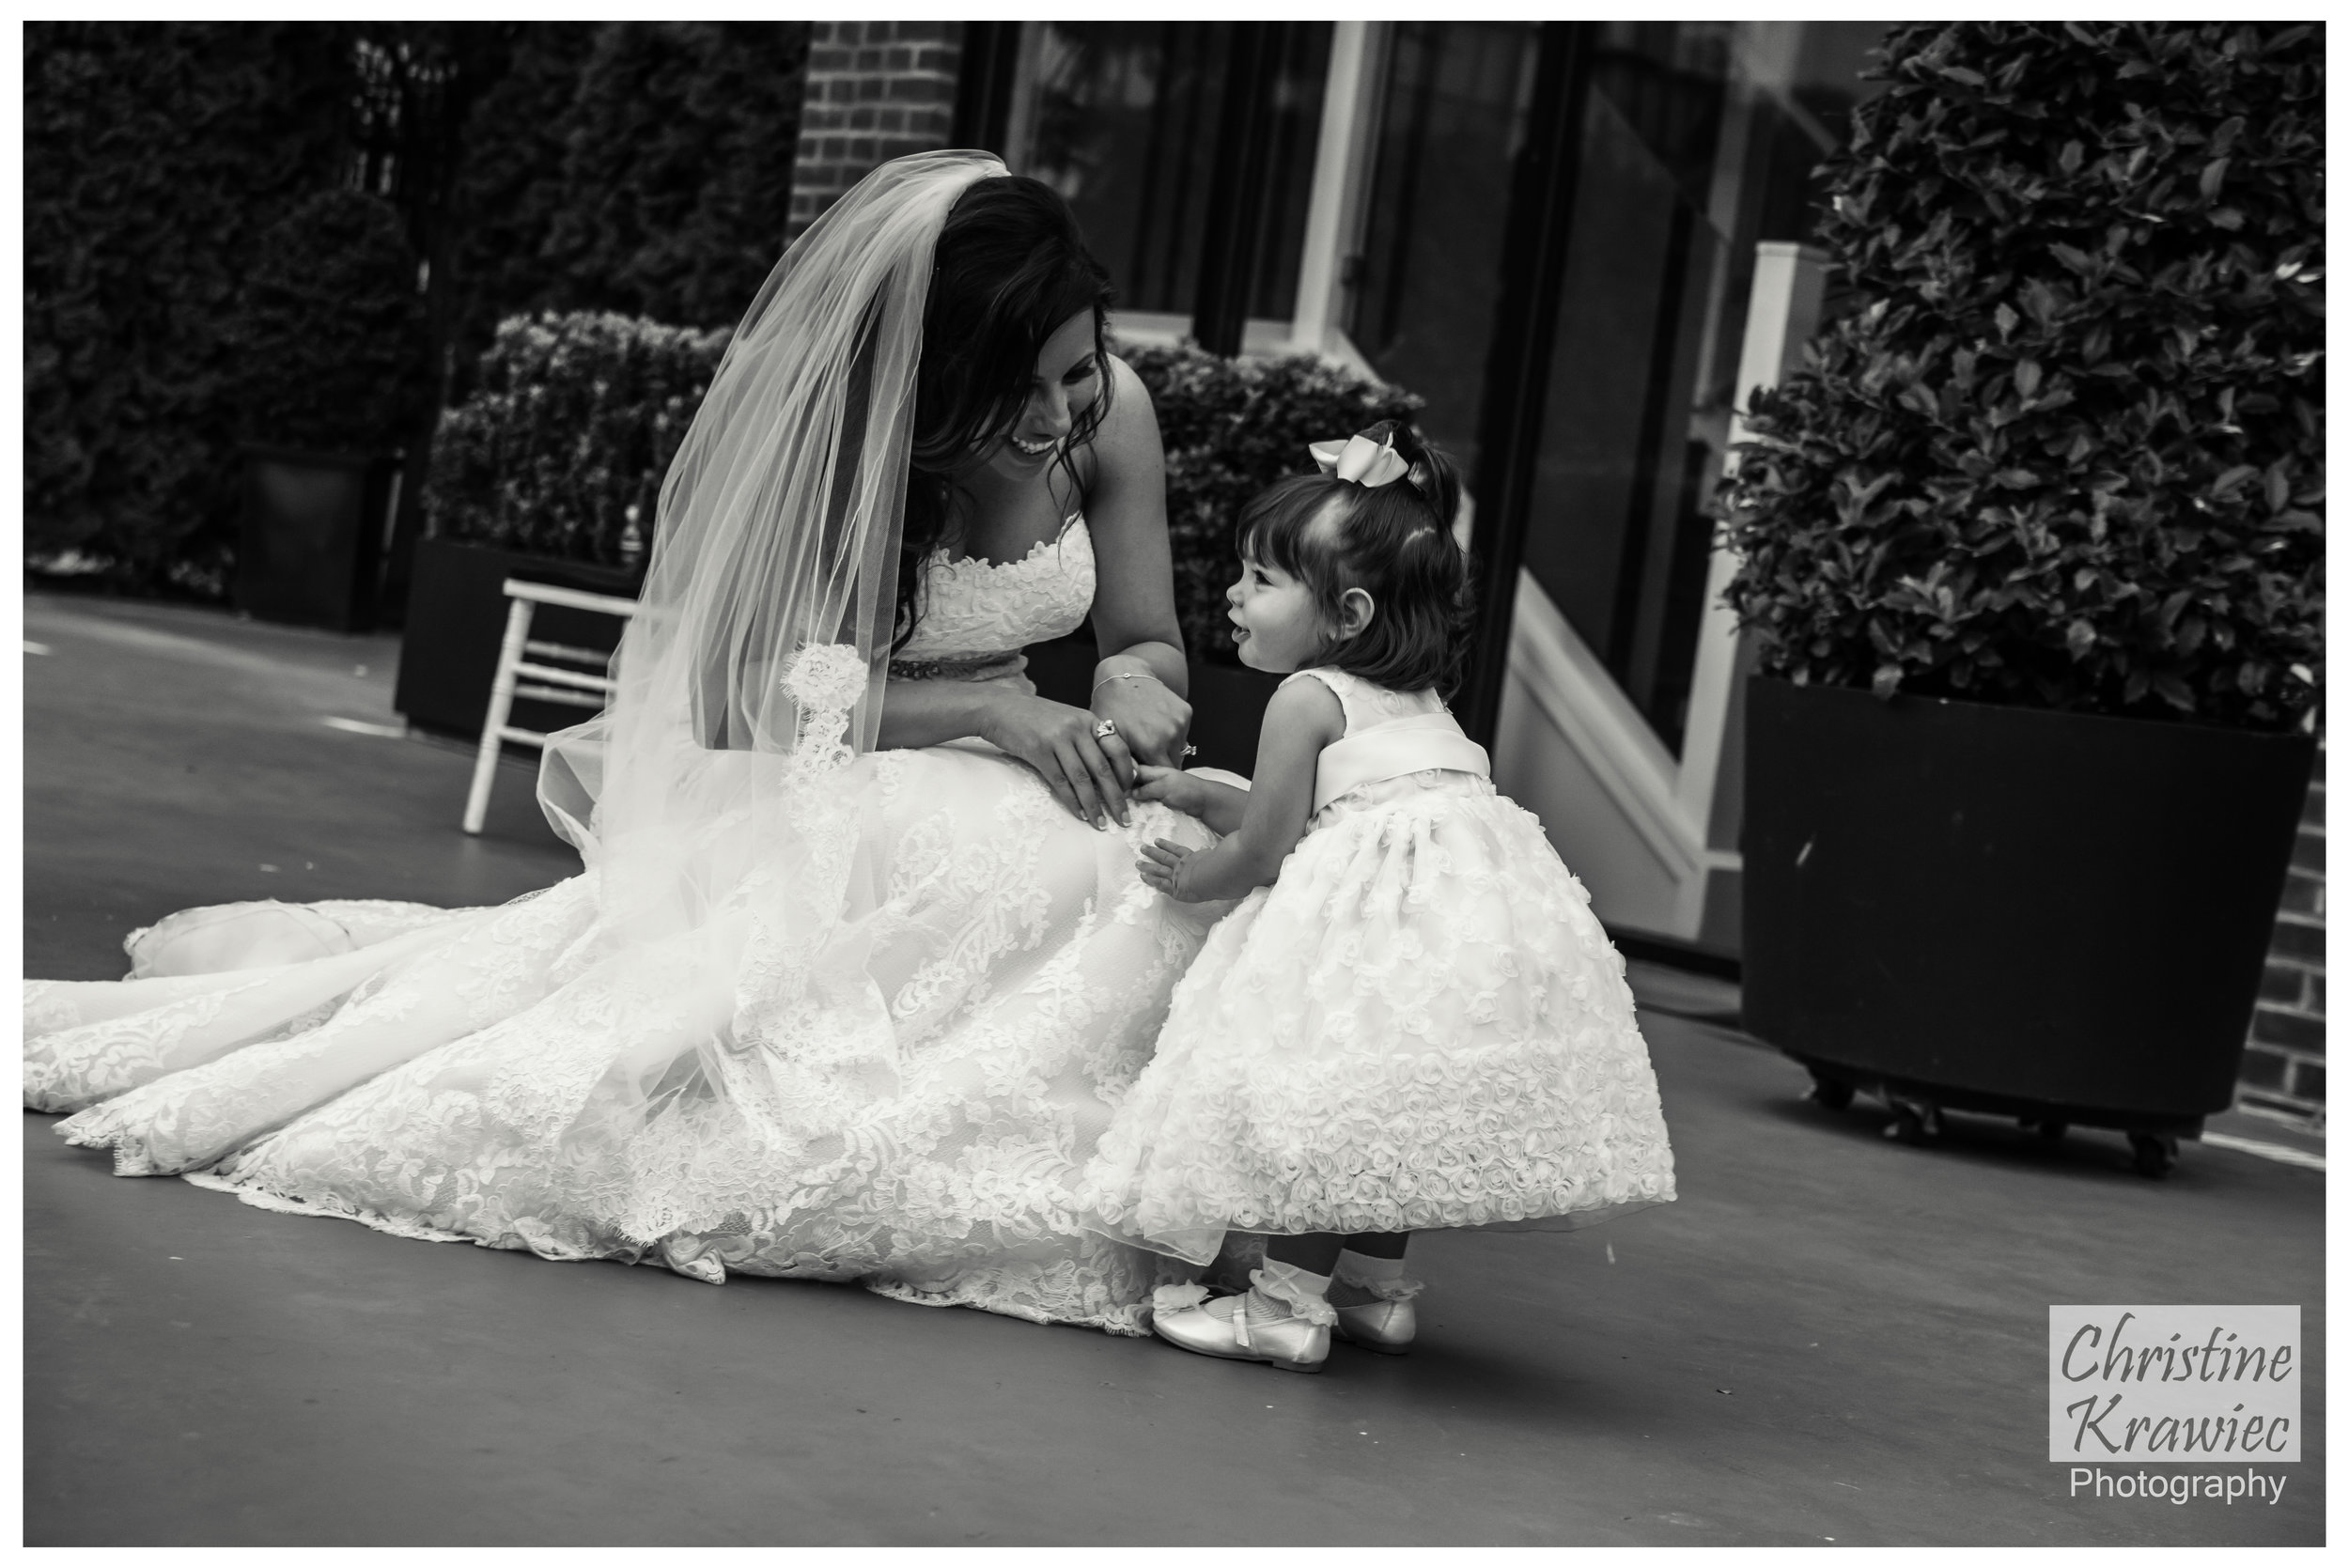 Lauren sharing a quiet moment with her flower girl